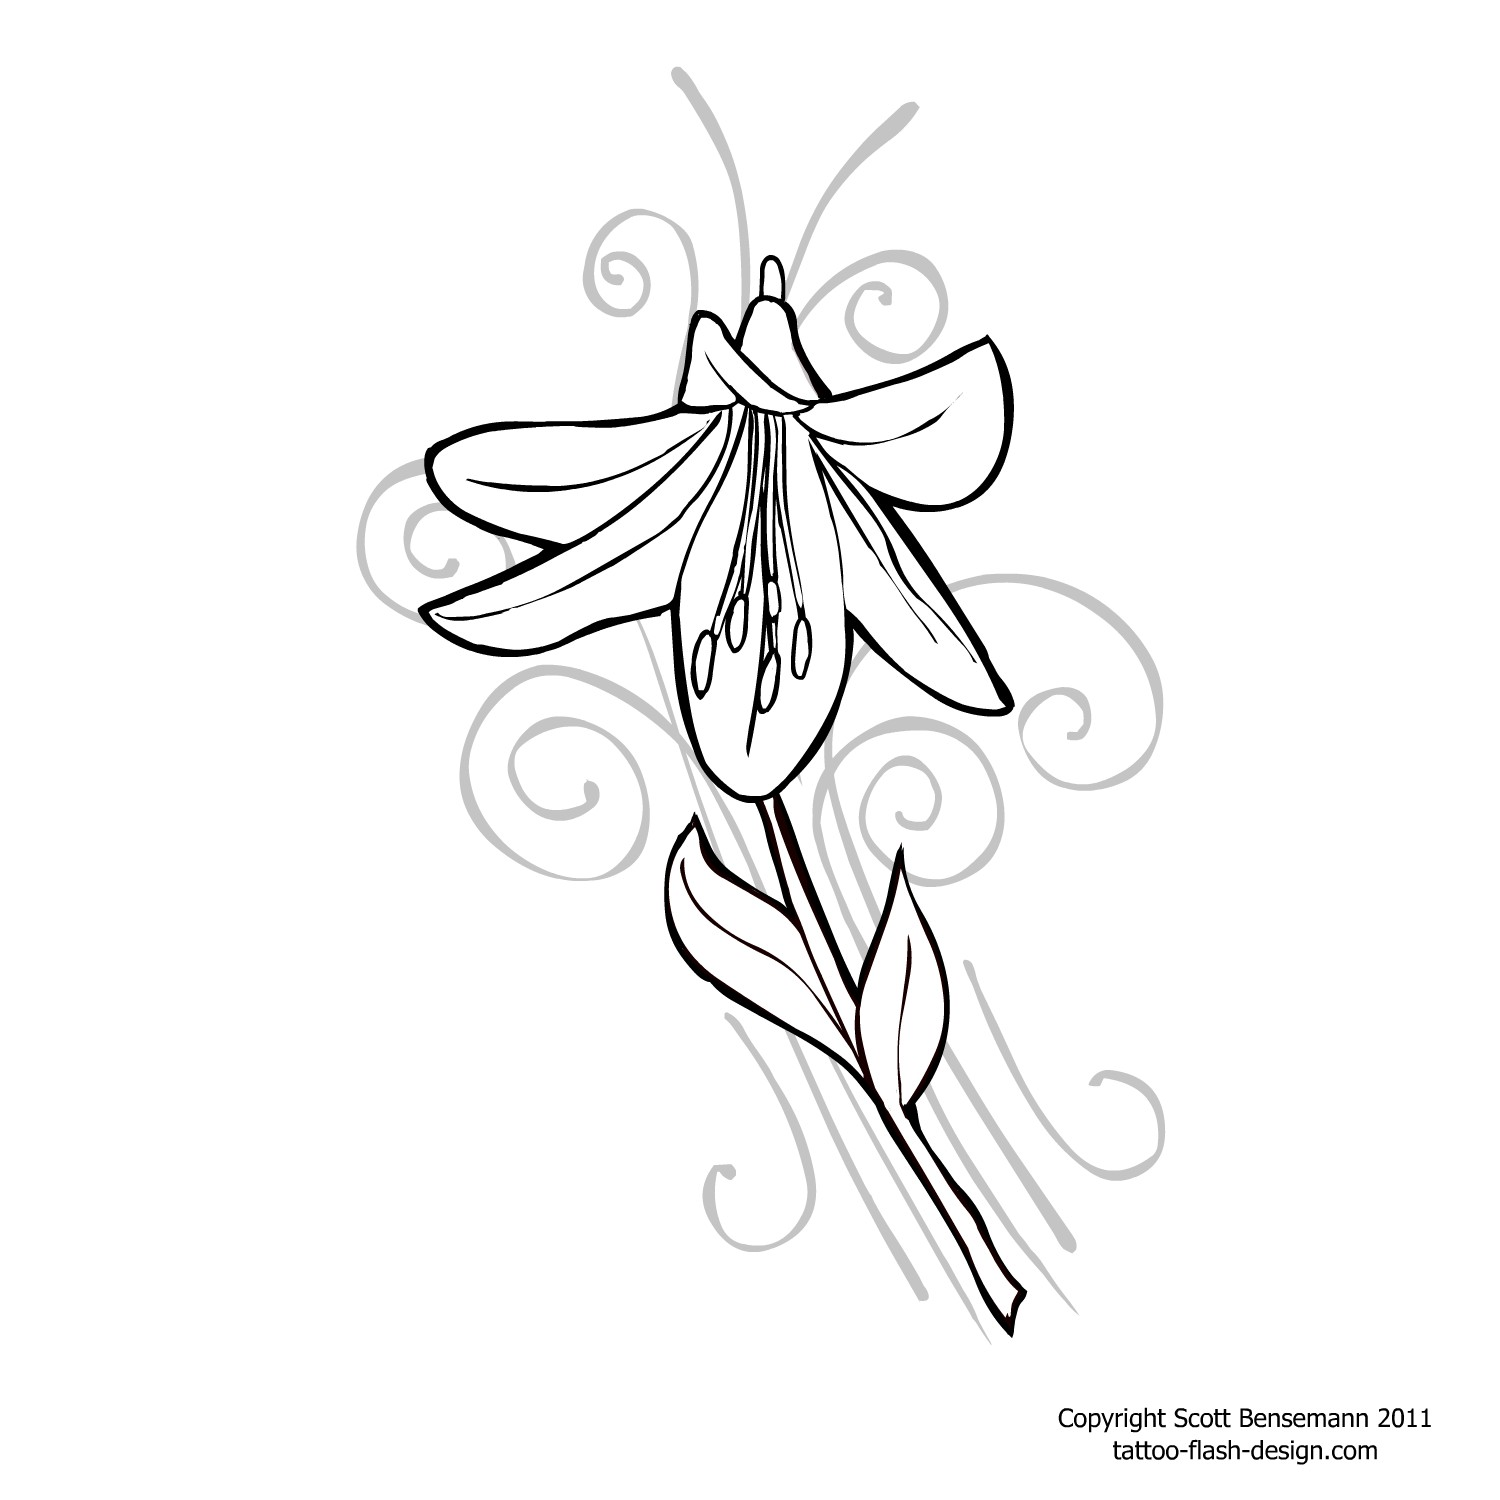 Lily flower tattoo drawing at getdrawings free for personal 1500x1500 tattoo flower orange lily design izmirmasajfo Image collections